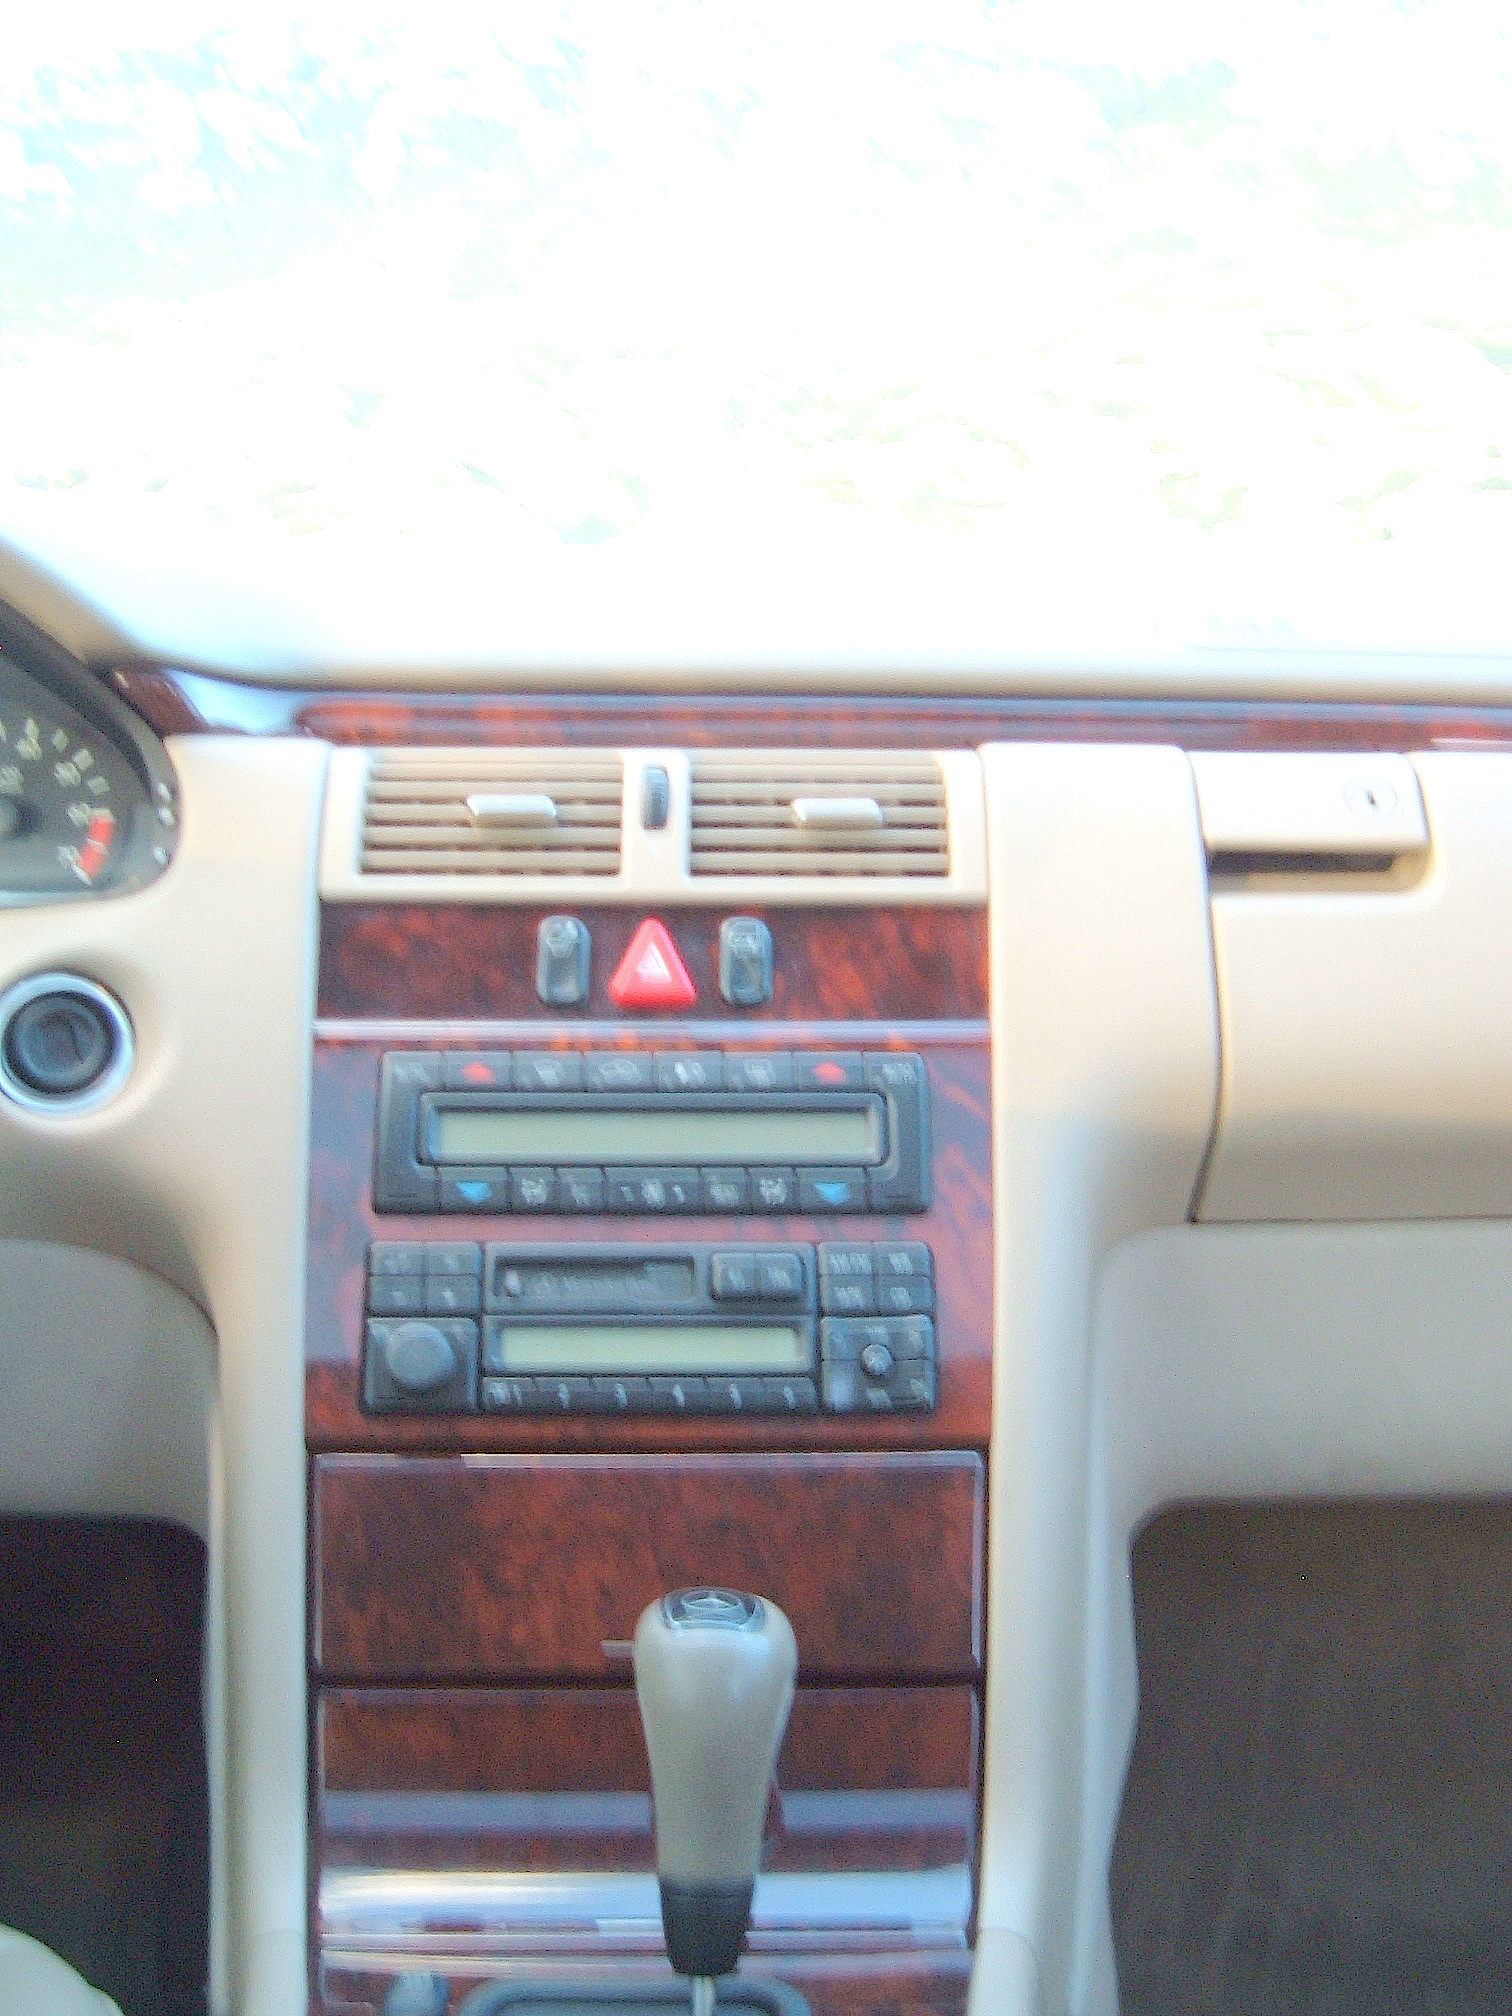 hight resolution of diy mercedes climate control doesn t work buttons broken mercedes benz w124 wiring diagram